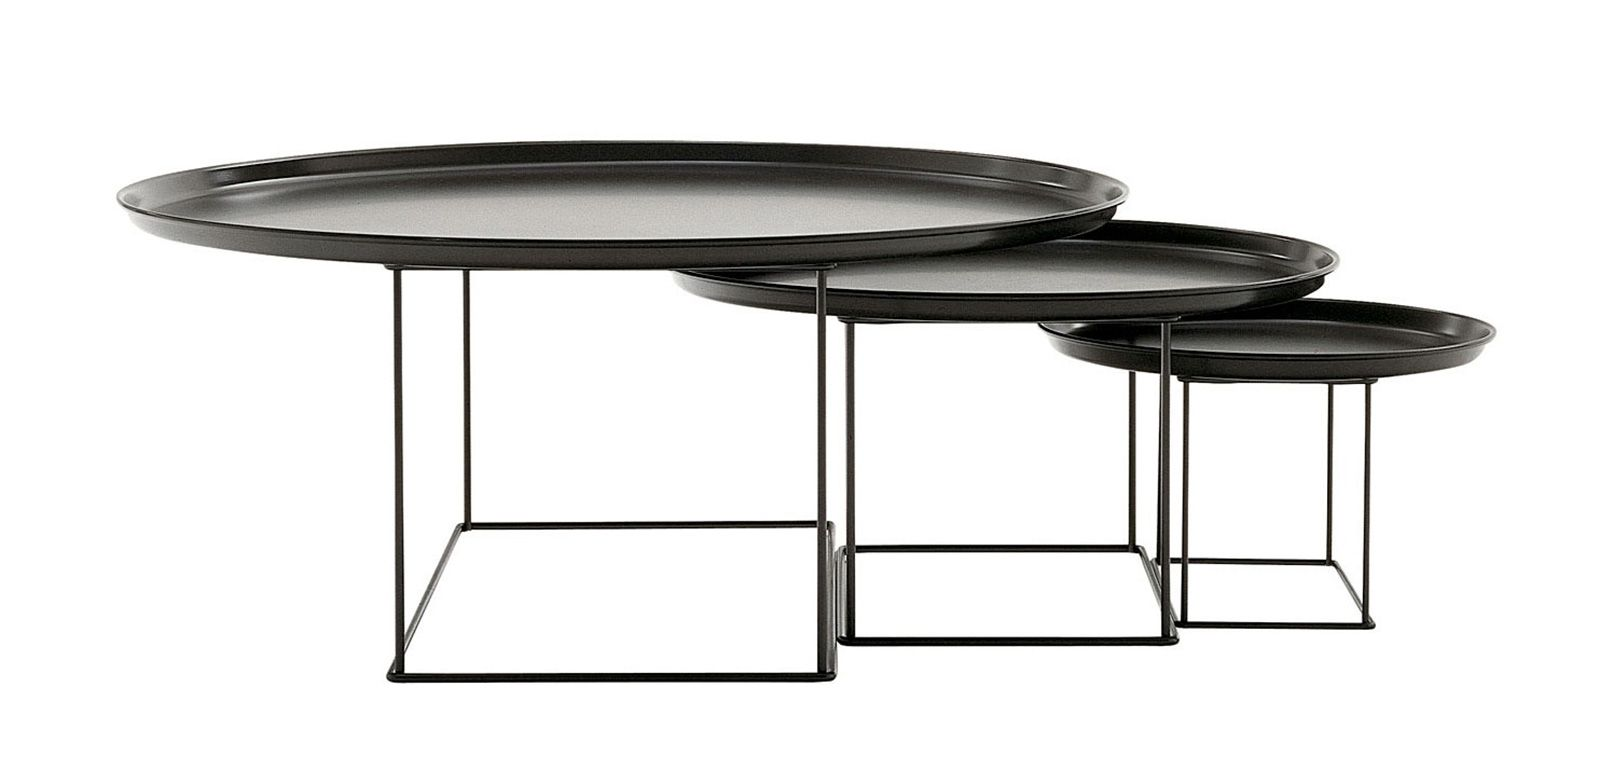 table basse design patricia urquiola tables gigognes. Black Bedroom Furniture Sets. Home Design Ideas